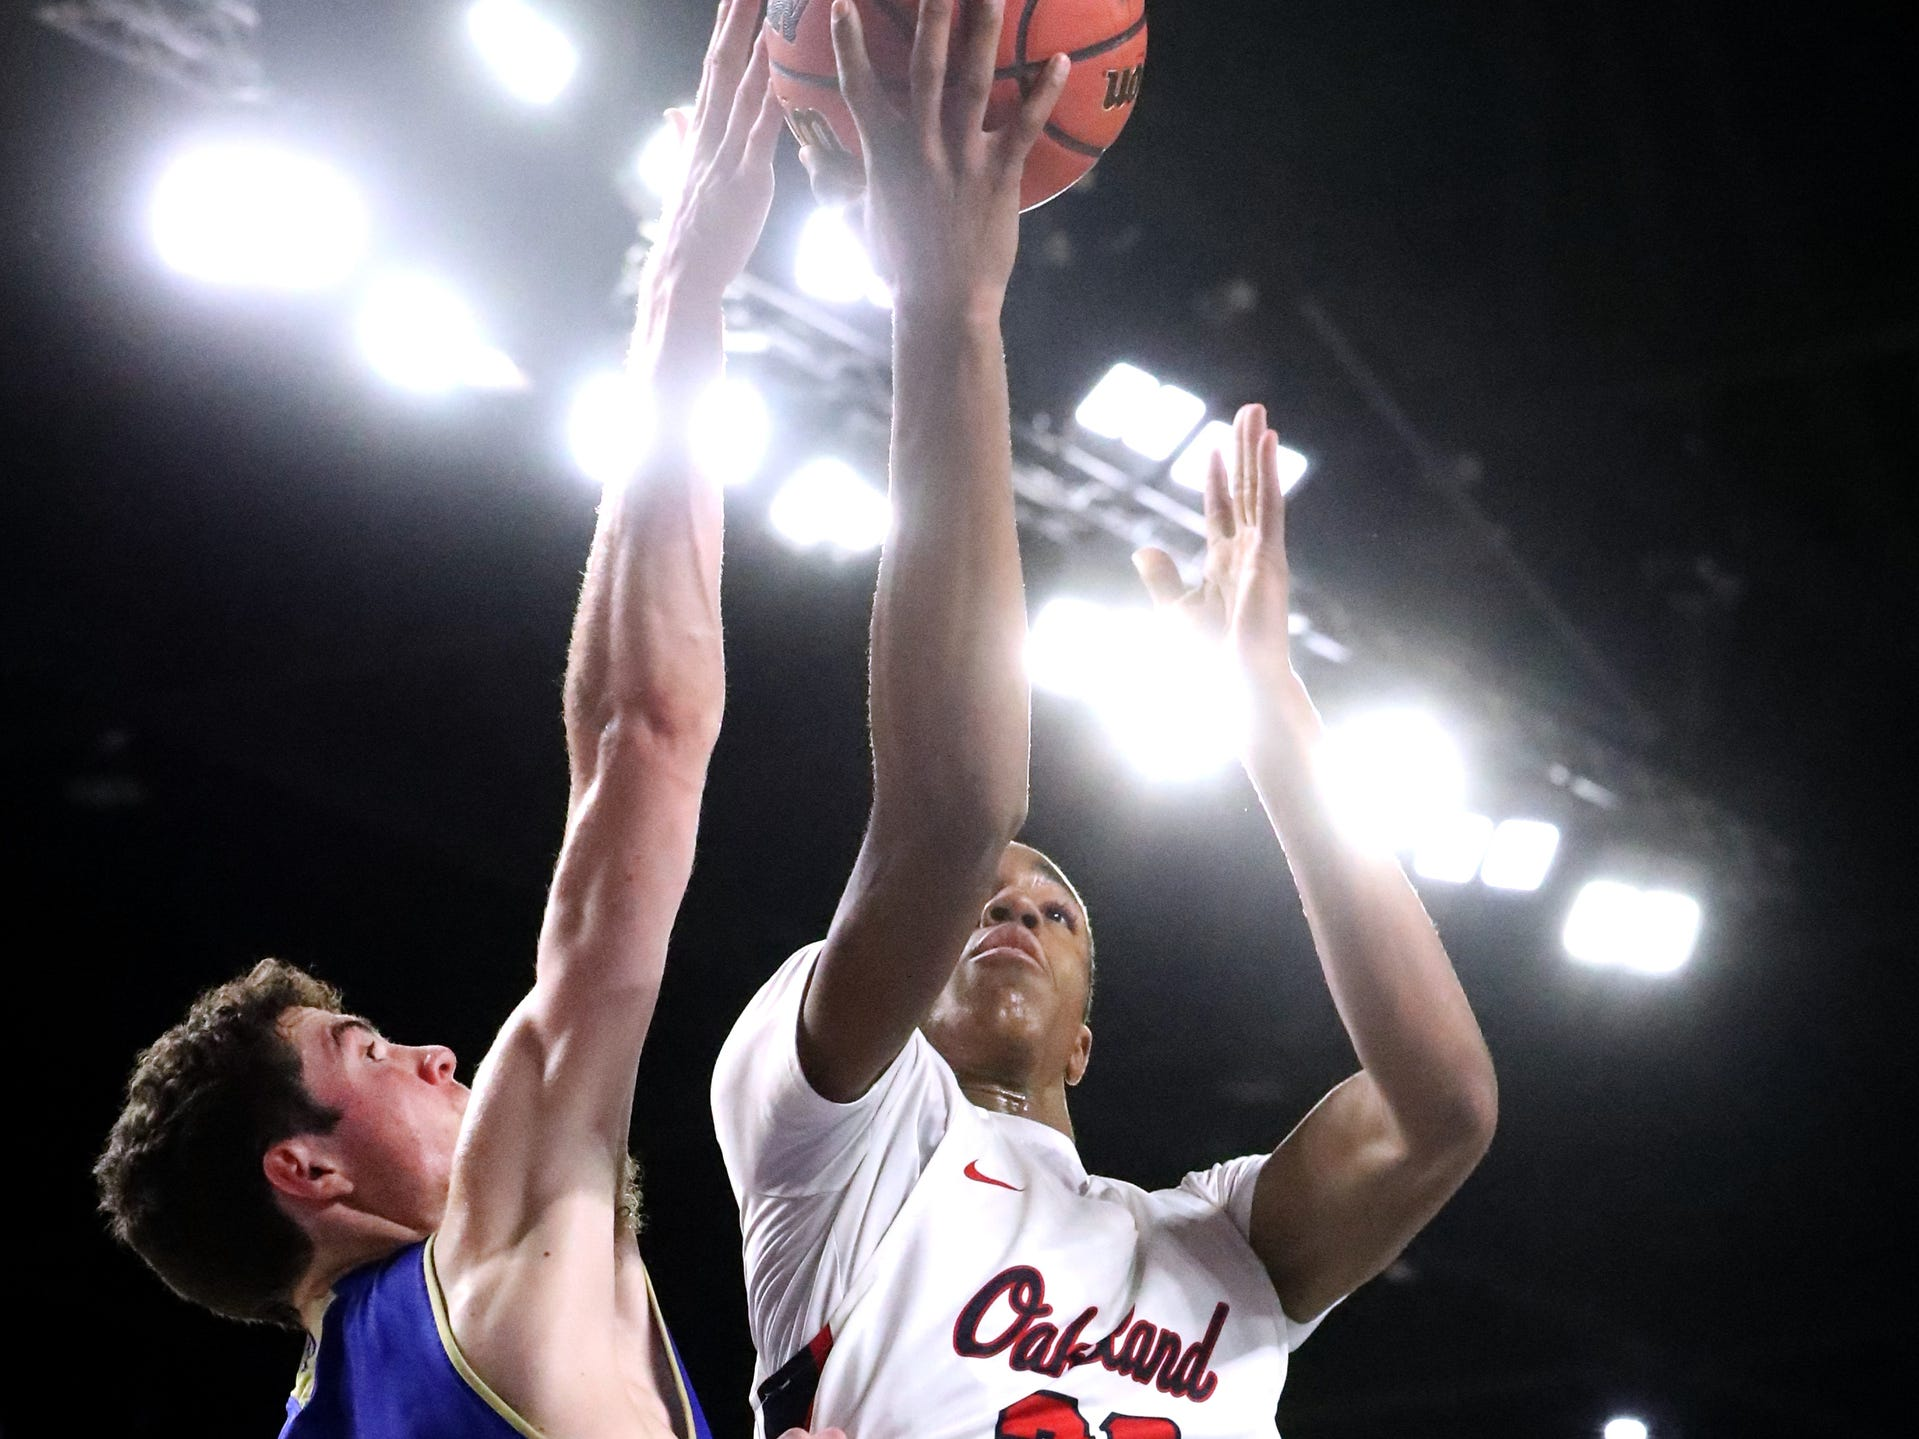 Oakland's Dorian Anderson (23) shoots the ball as Brentwood's John Windley (10) guards him during the quarterfinal round of the TSSAA Class AAA Boys State Tournament, on Thursday, March 14, 2019, at Murphy Center in Murfreesboro, Tenn.